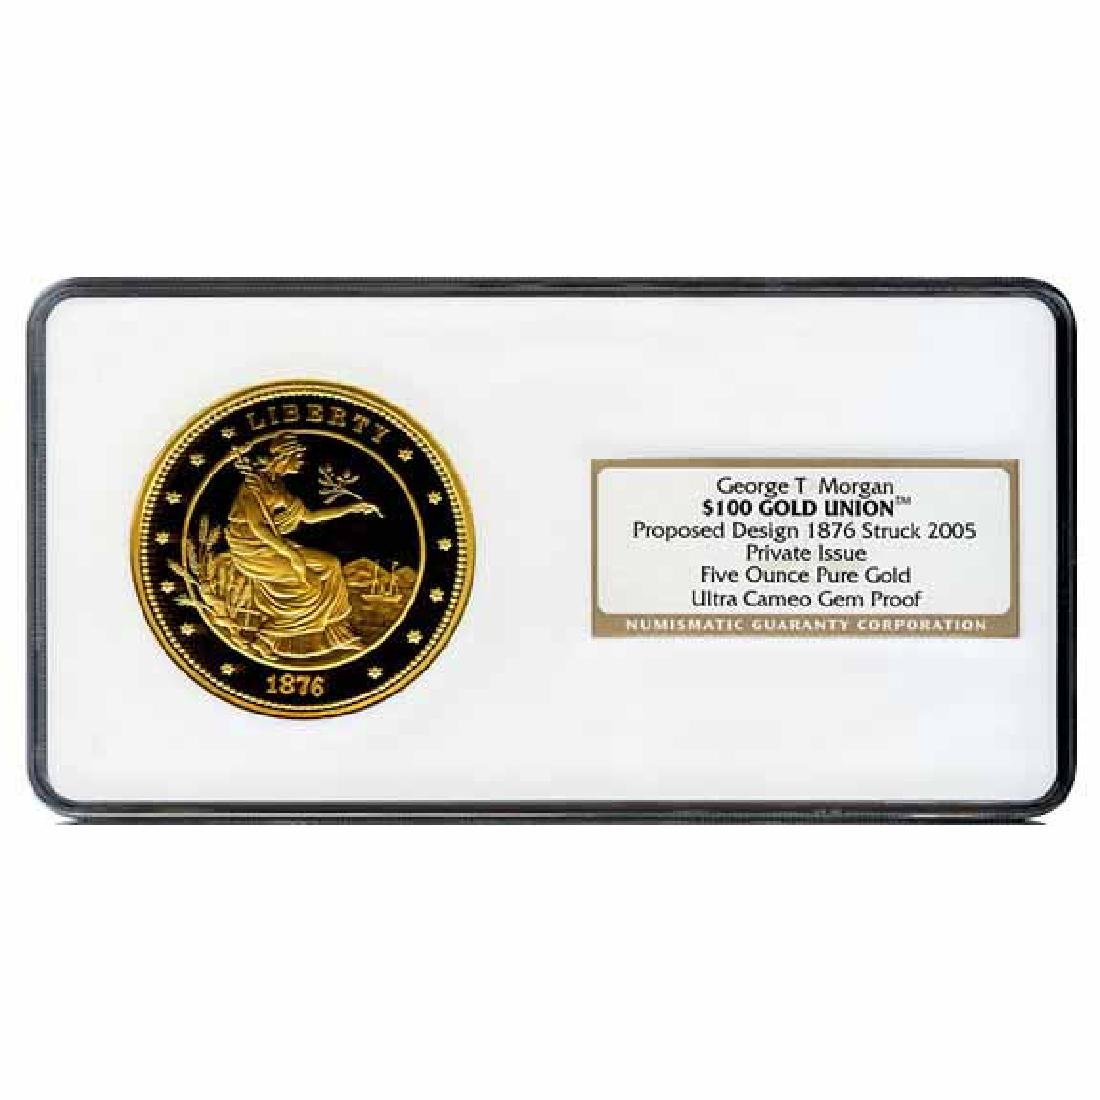 Certified $100 Gold Union Proof Five Ounce Proposed 187